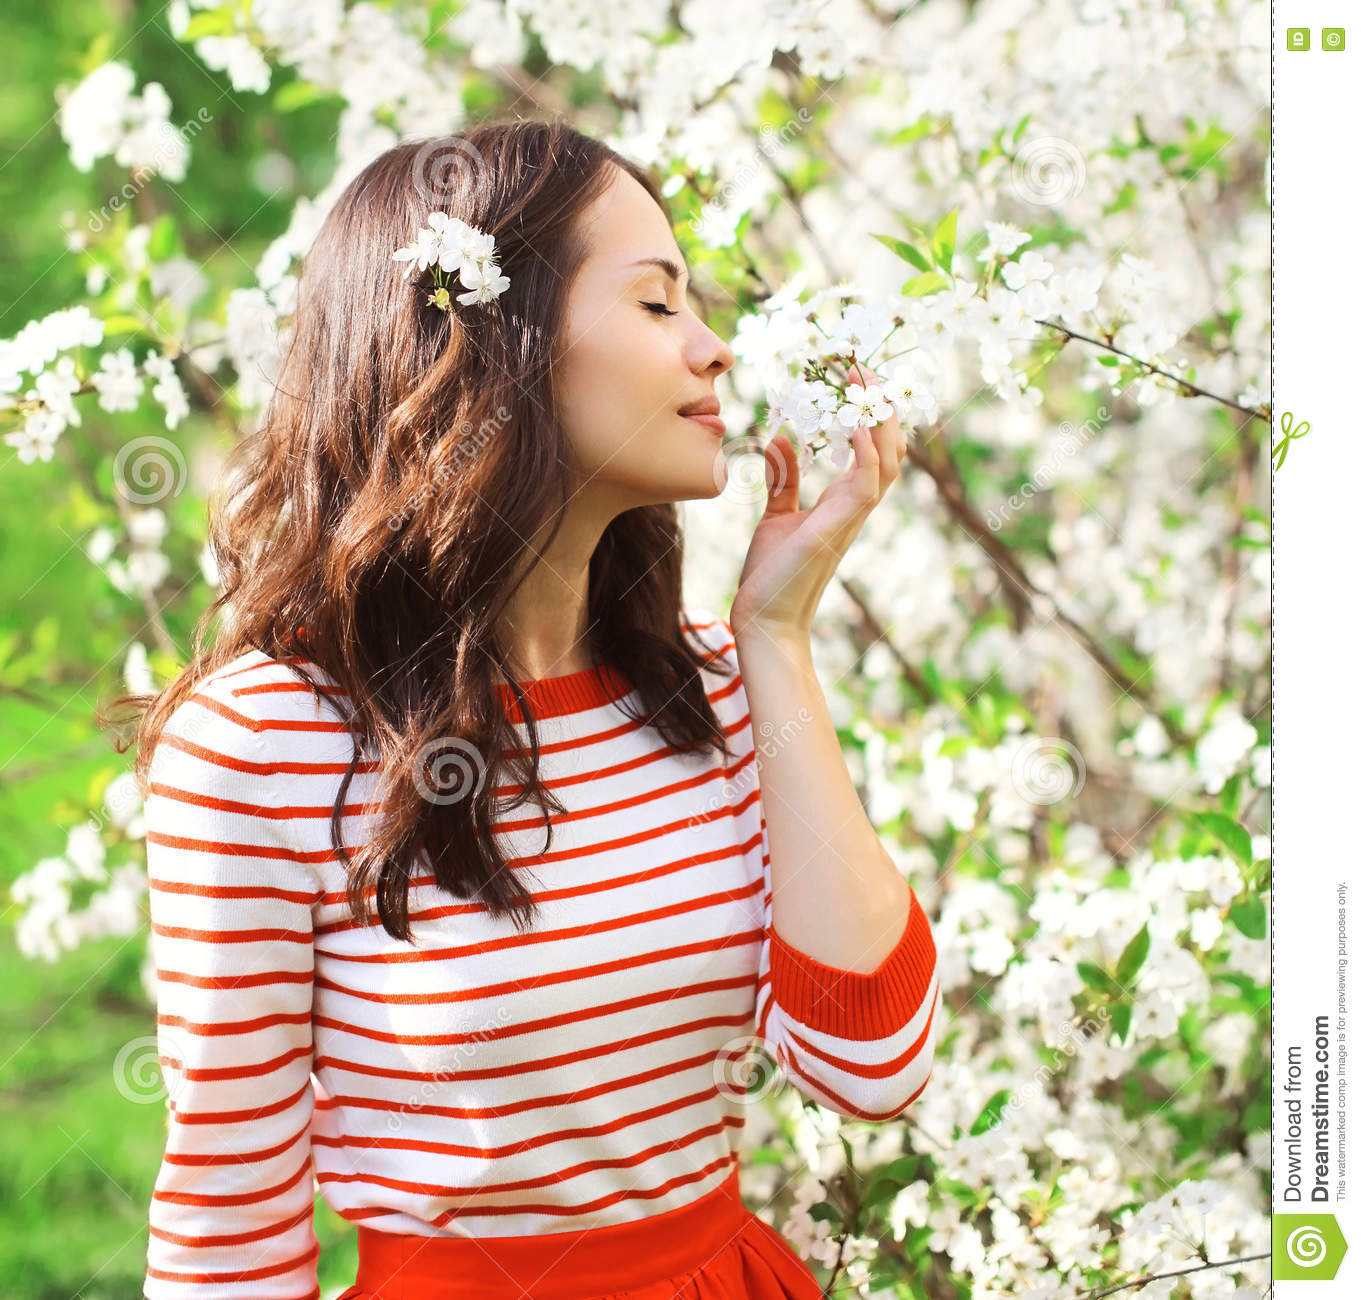 Beautiful young woman in a flowering spring garden enjoying petals of flowers